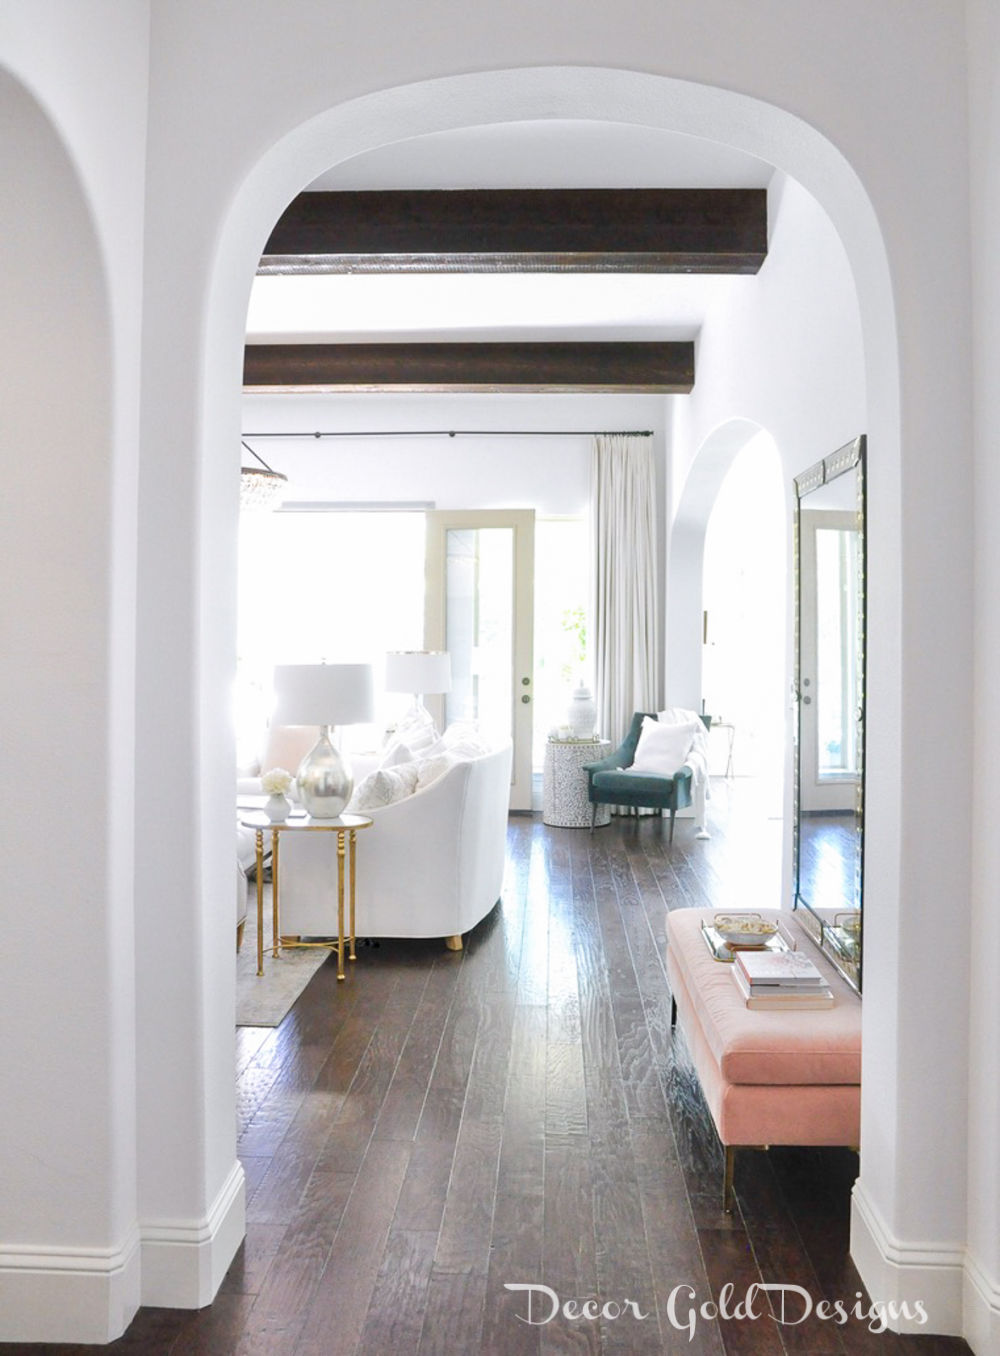 Spring home tour blush pink bench entryway arches beams